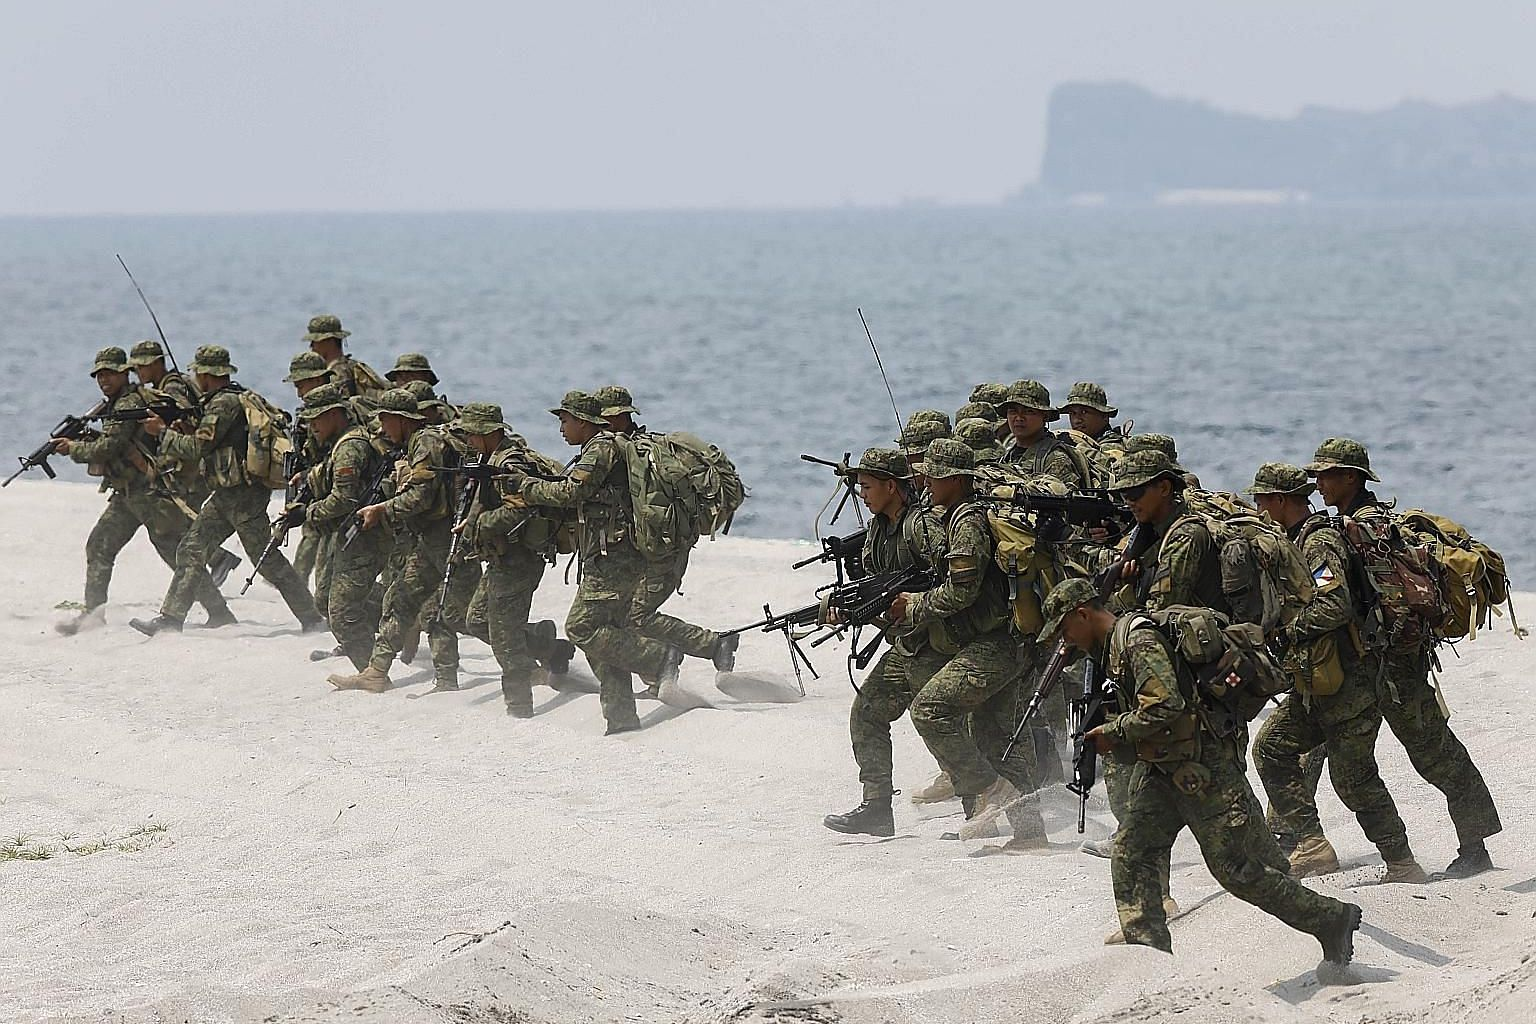 Philippine Marines in a drill with their United States counterparts on a beach in the Philippines last May. The writer says a greater source of concern for Manila is the lack of clarity on the precise geographical scope of the Mutual Defence Treaty a